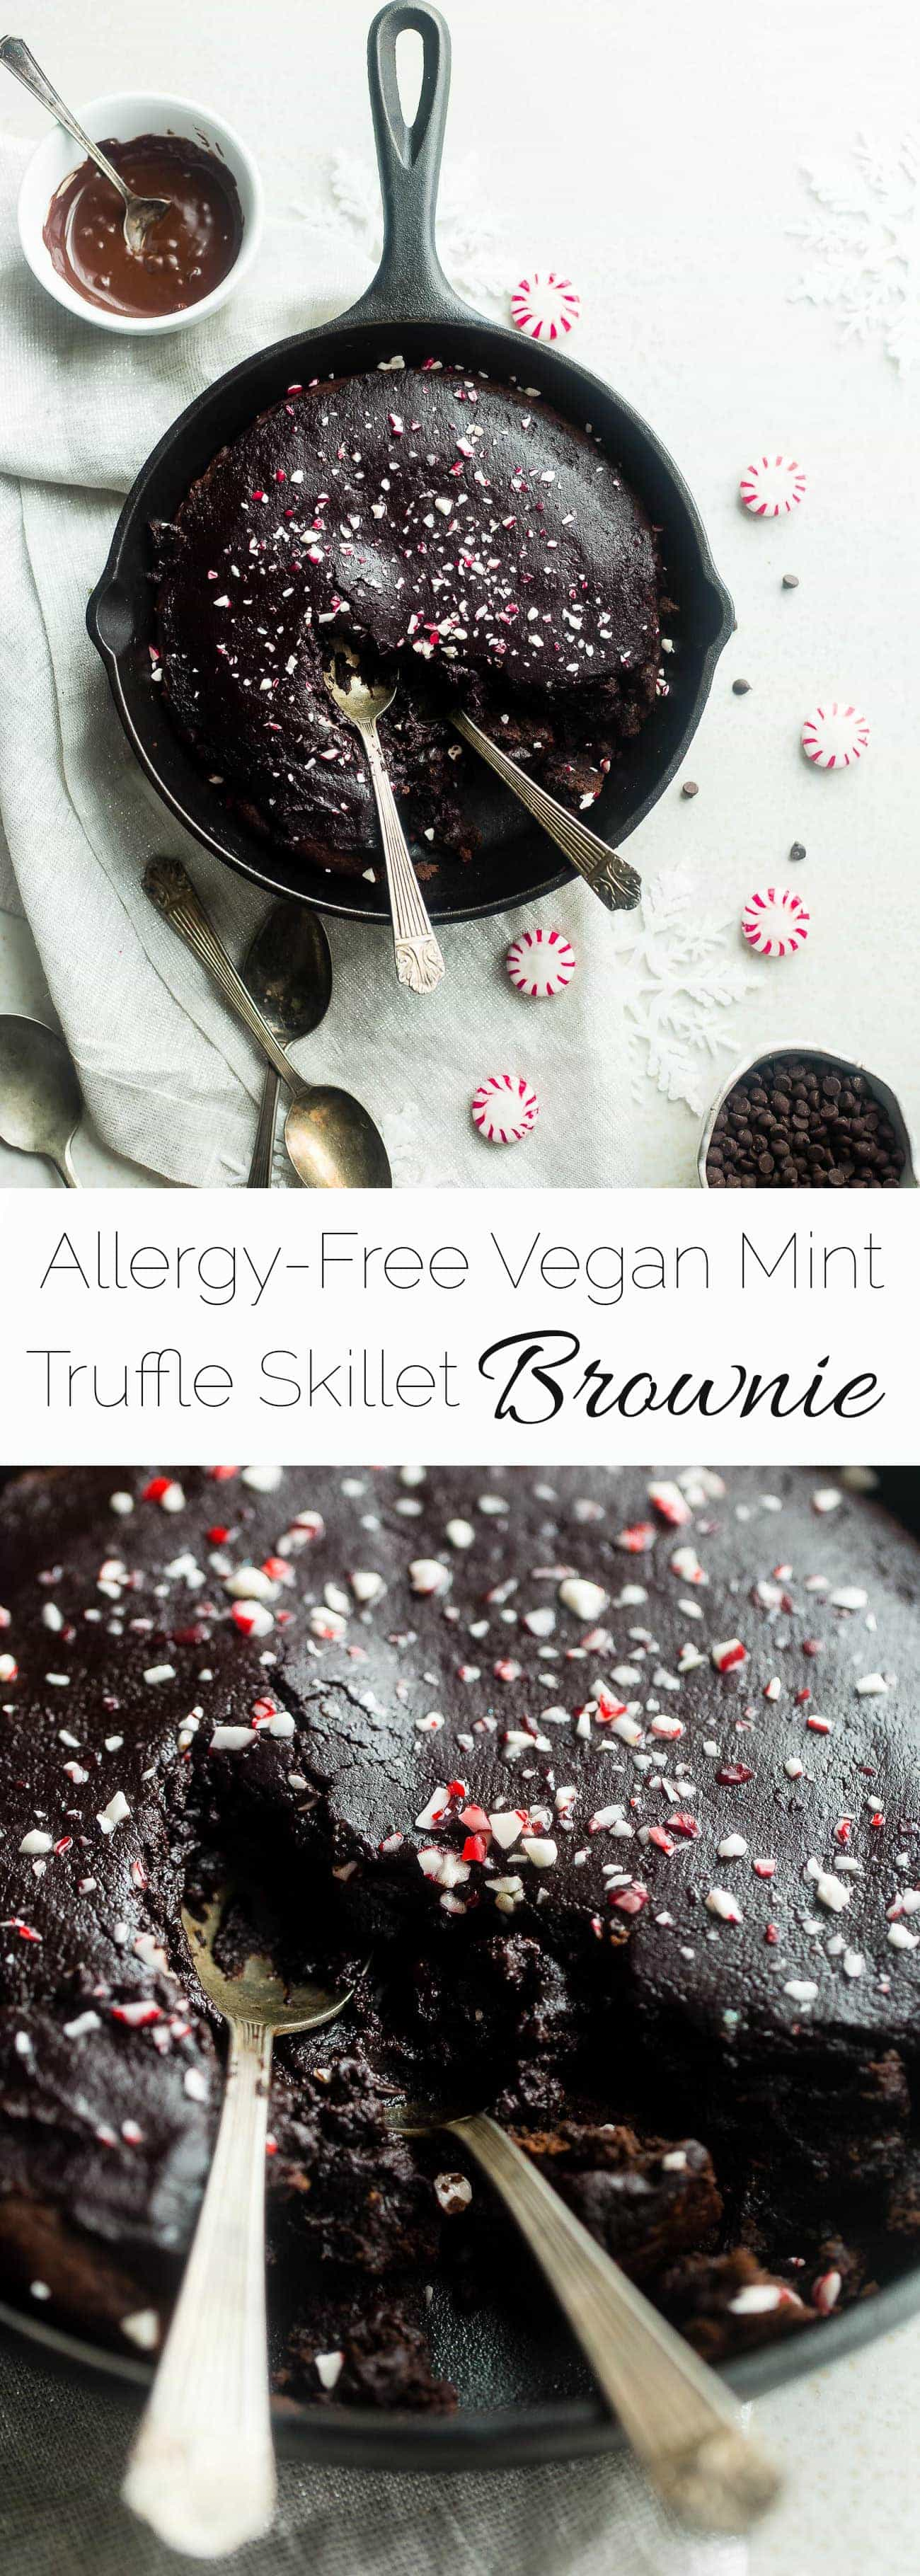 Vegan Peppermint Skillet Brownie - This fudgy, rich peppermint vegan brownie is baked in a skillet and is covered with a healthy chocolate truffle frosting! It's an easy, gluten and allergy free holiday dessert! | Foodfaithfitness.com | @FoodFaithFit